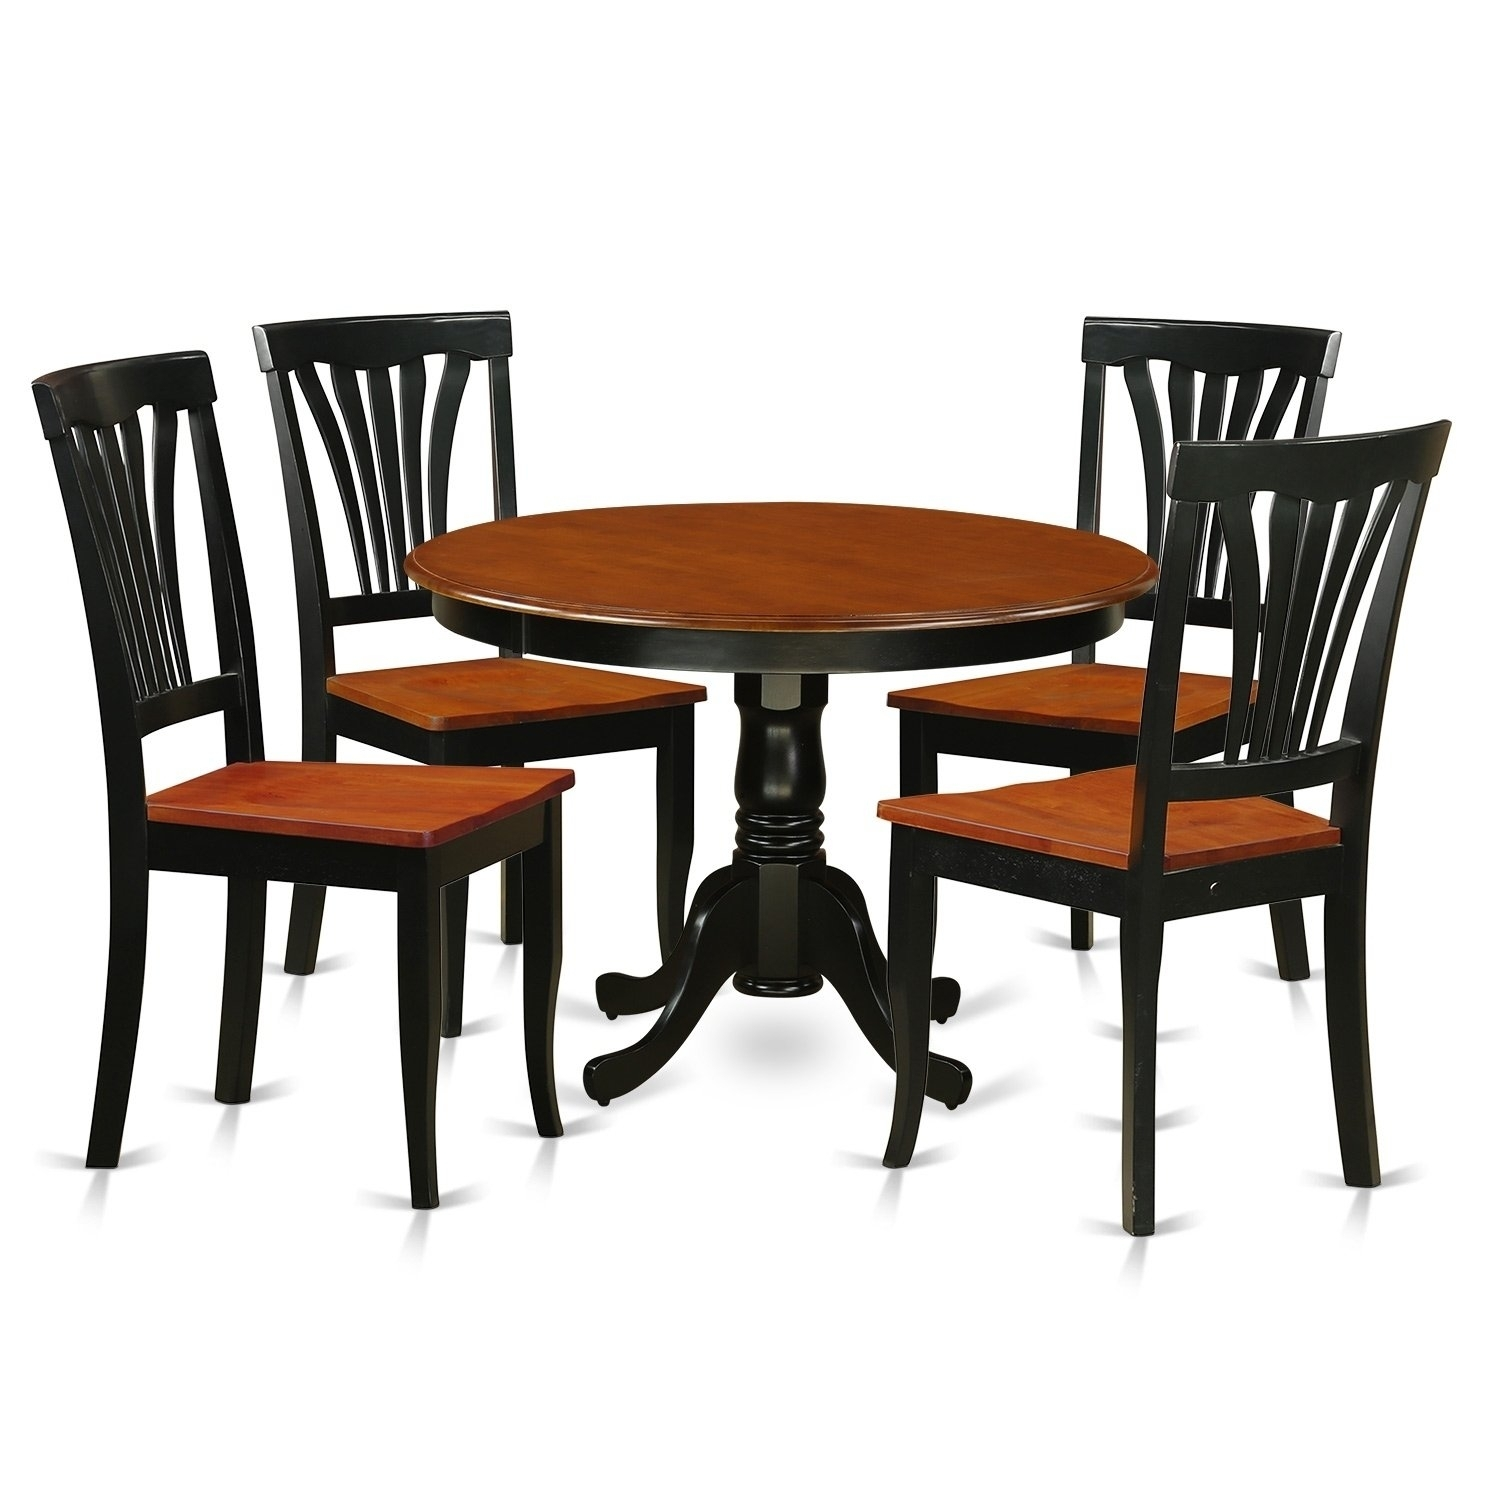 Hlav5 W 5 Pc Table Set With A Dinette Table And 4 Dining Chairs With Regard To Newest Caden 5 Piece Round Dining Sets (Photo 13 of 20)